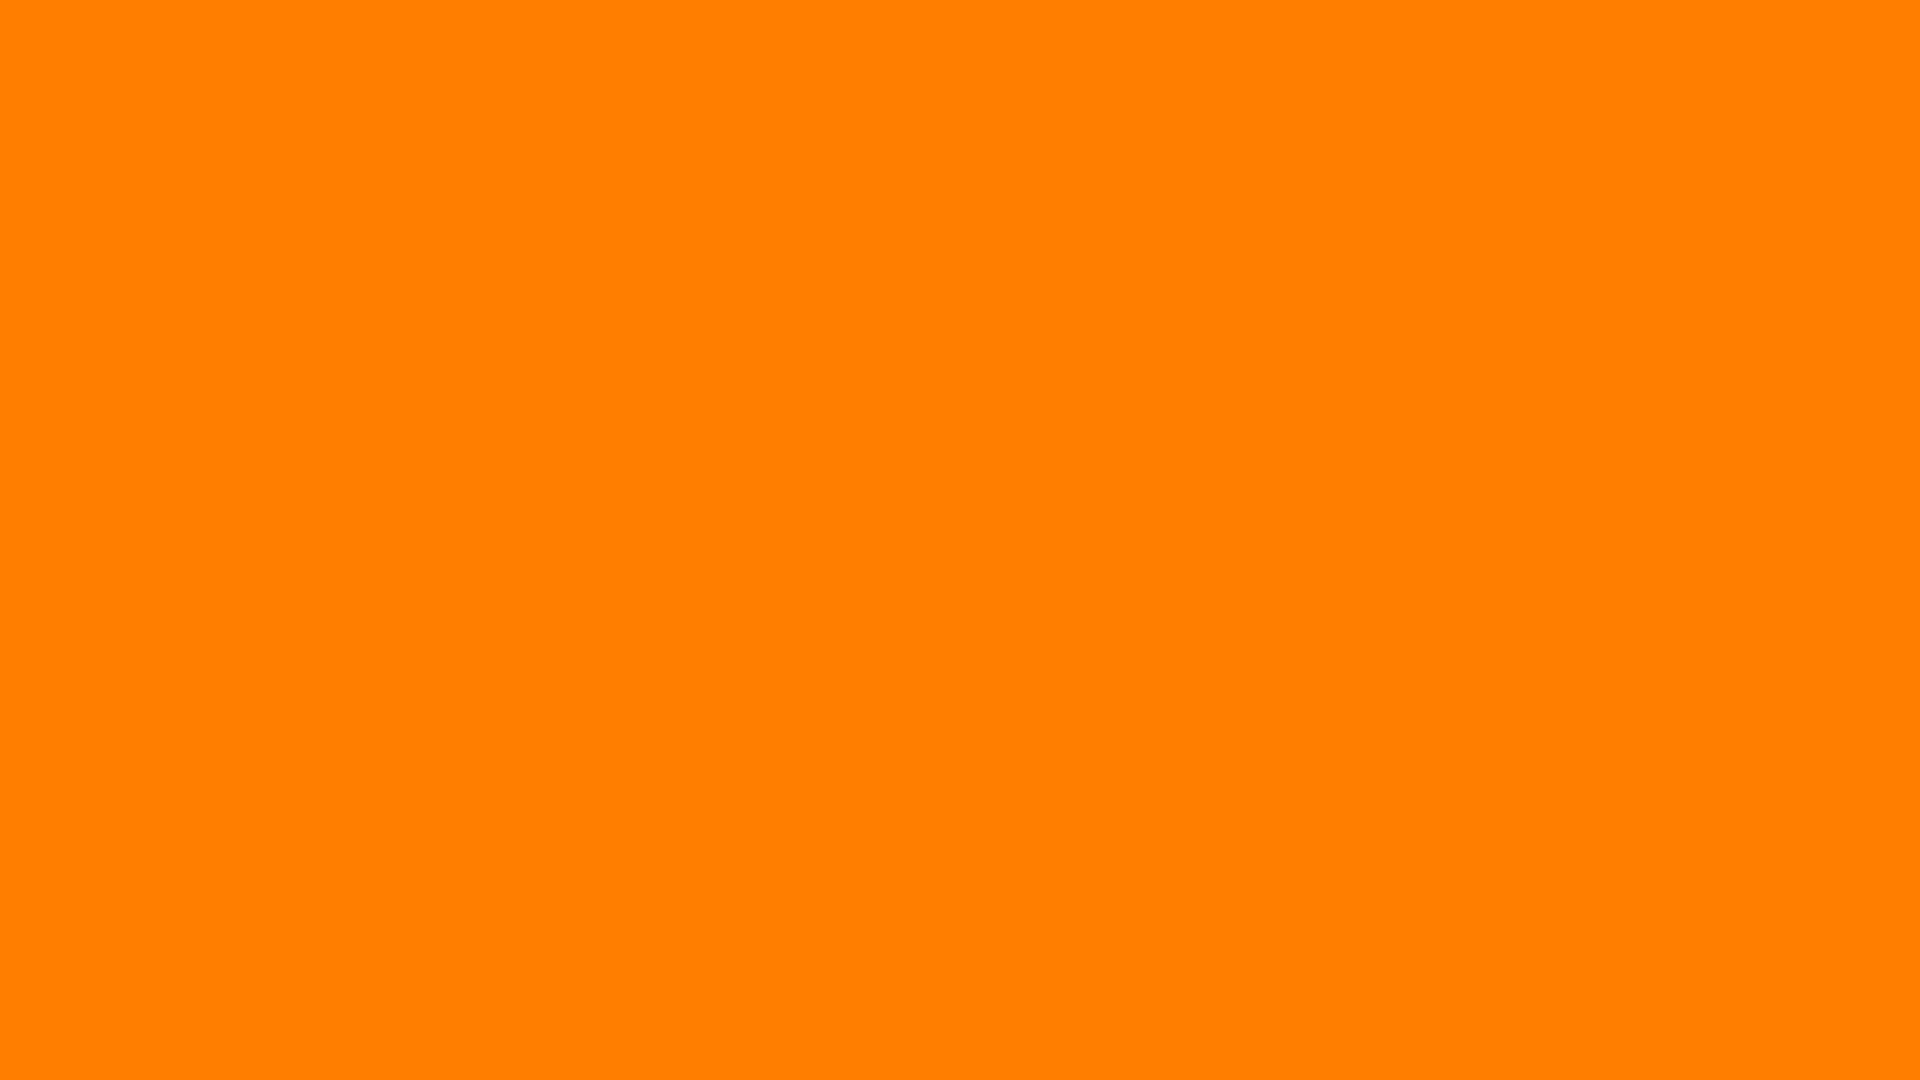 Orange solid color background view and download the below background 1920x1080